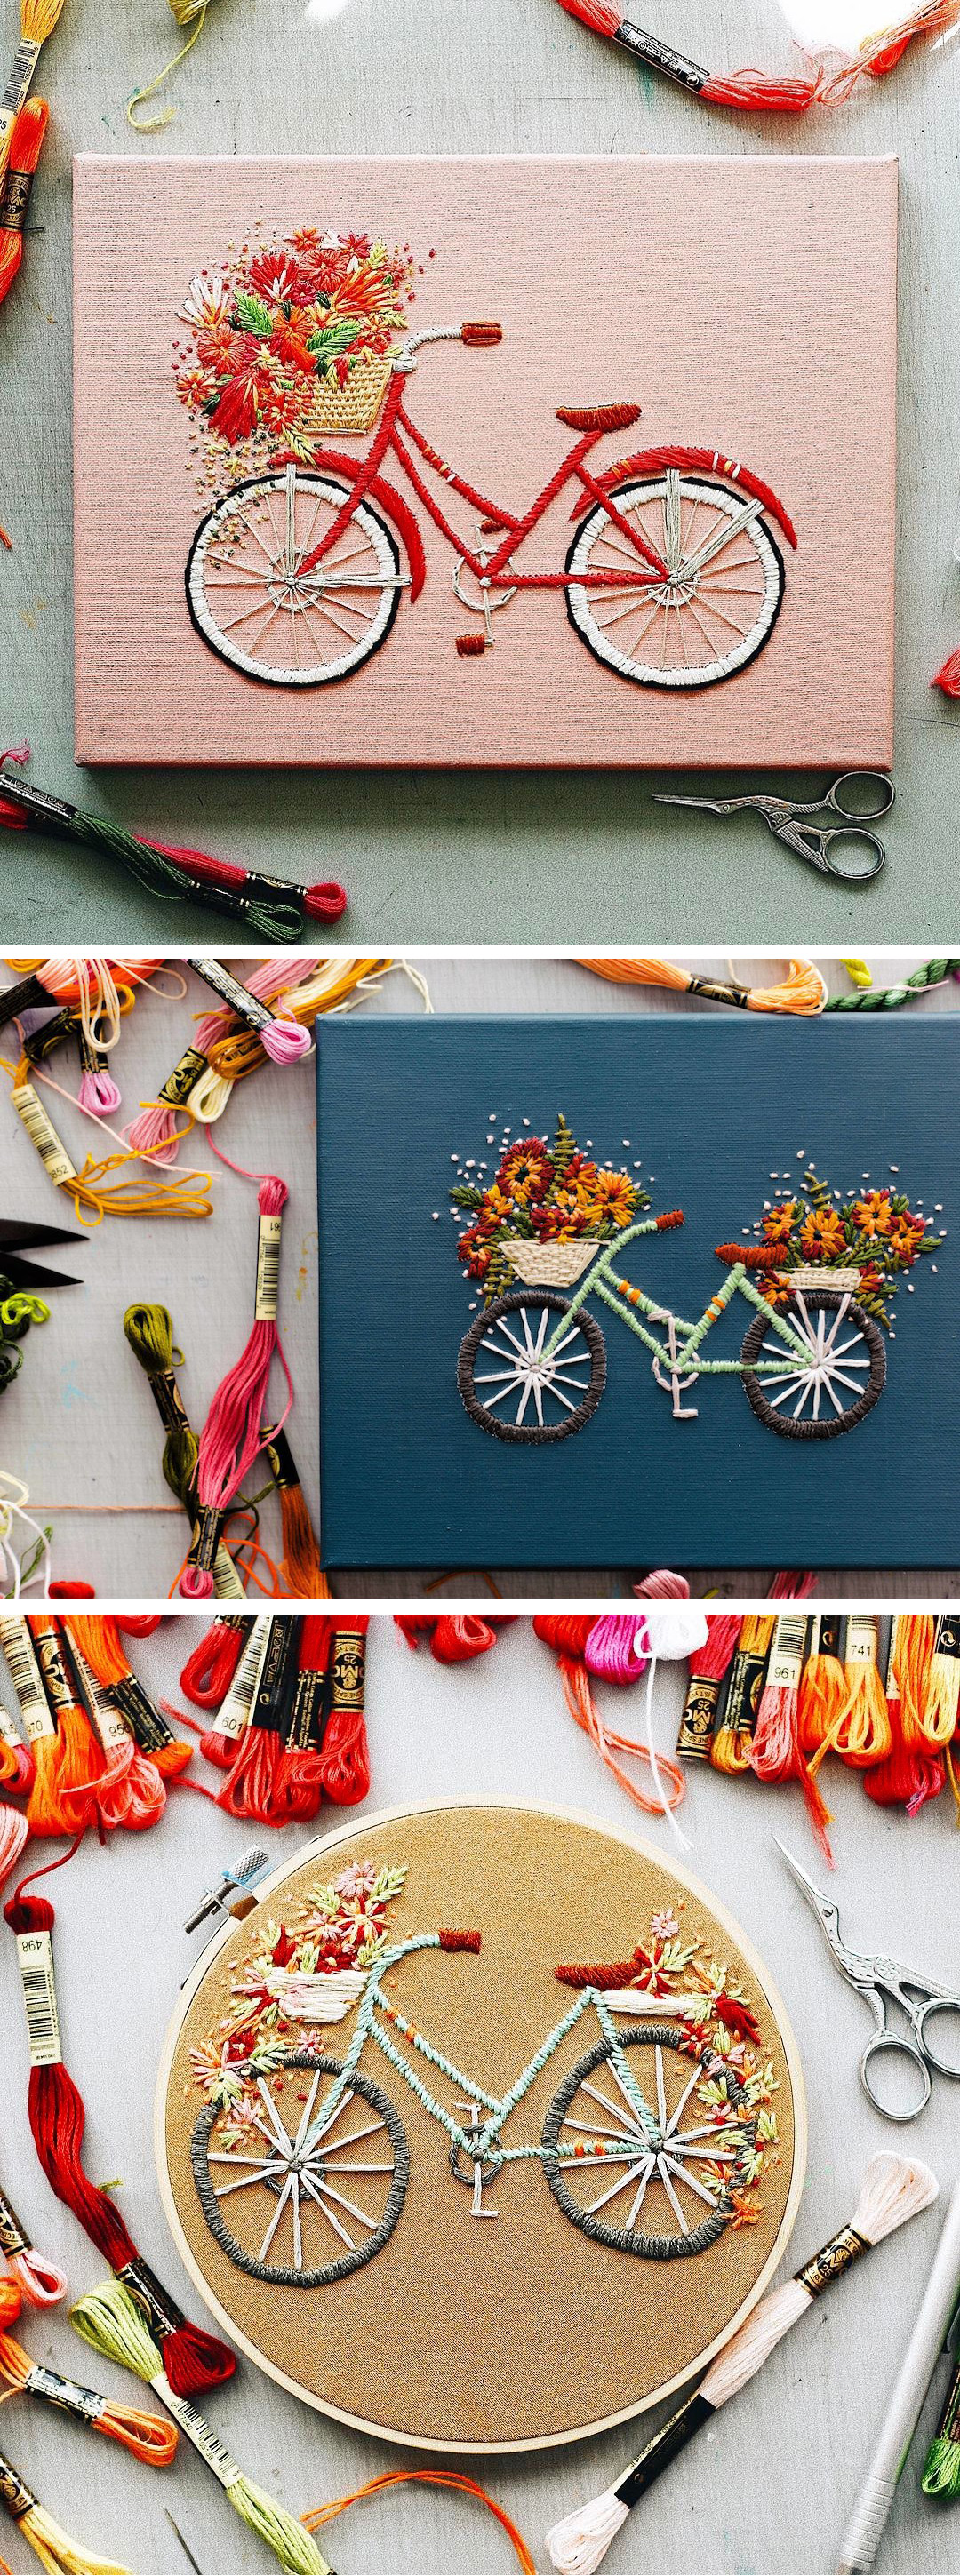 Bicycle Embroidery by TrueFort